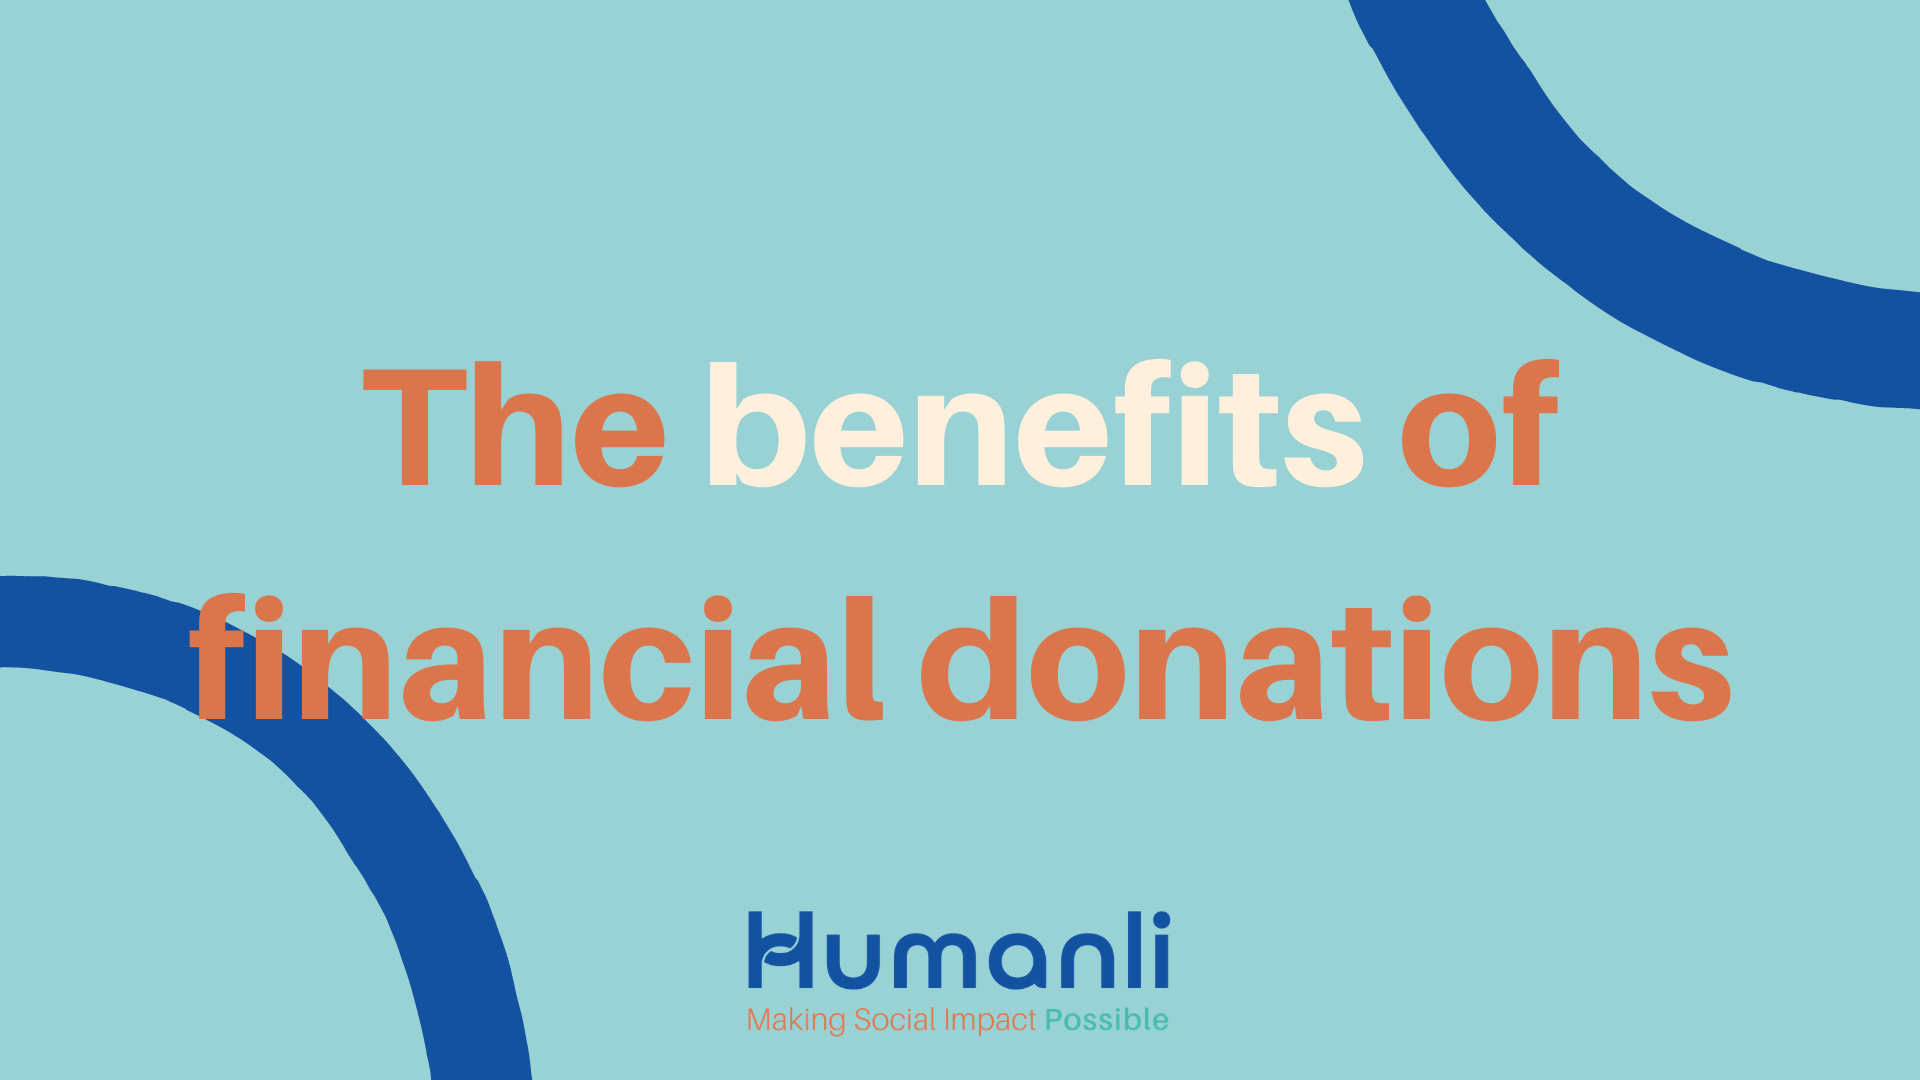 Here are the top four benefits of financial donations